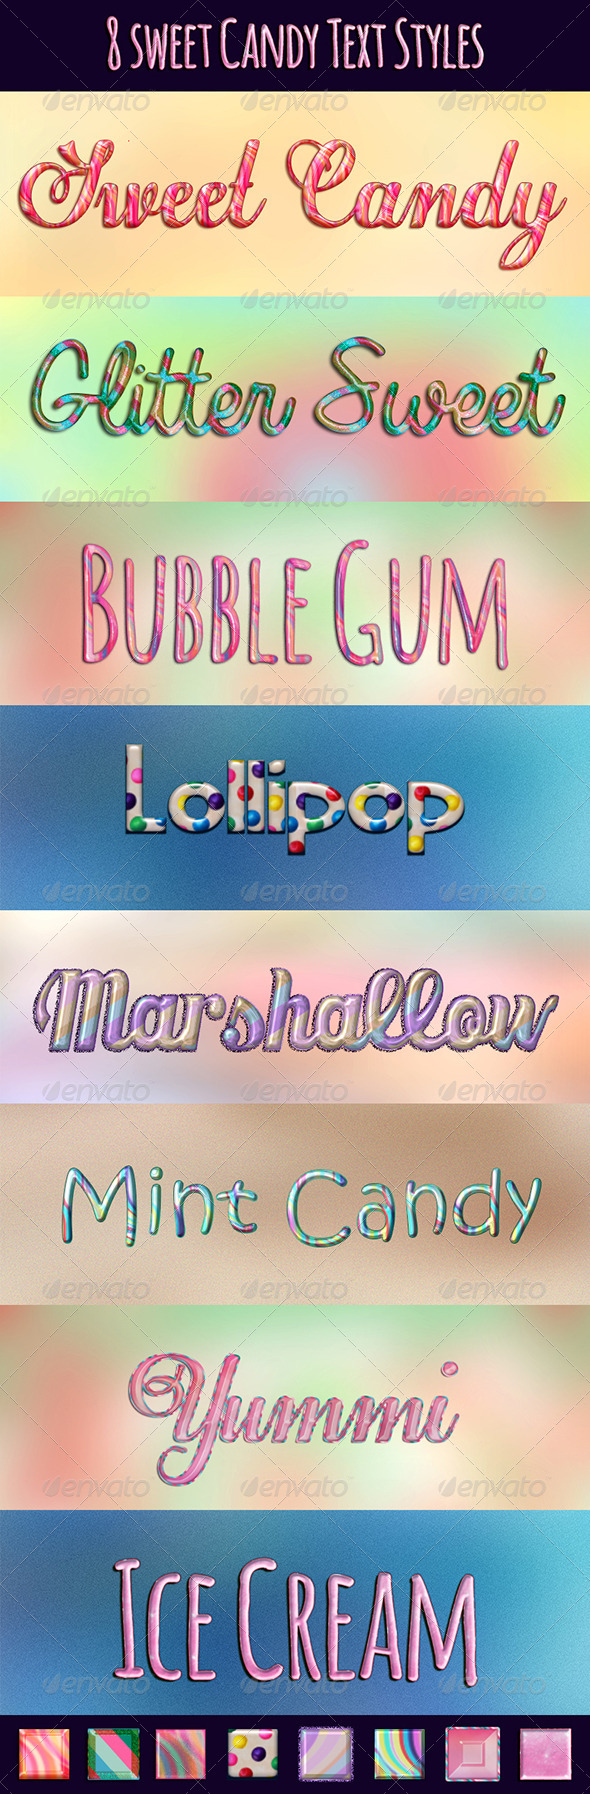 GraphicRiver Sweet Candy Layer Styles 4808552